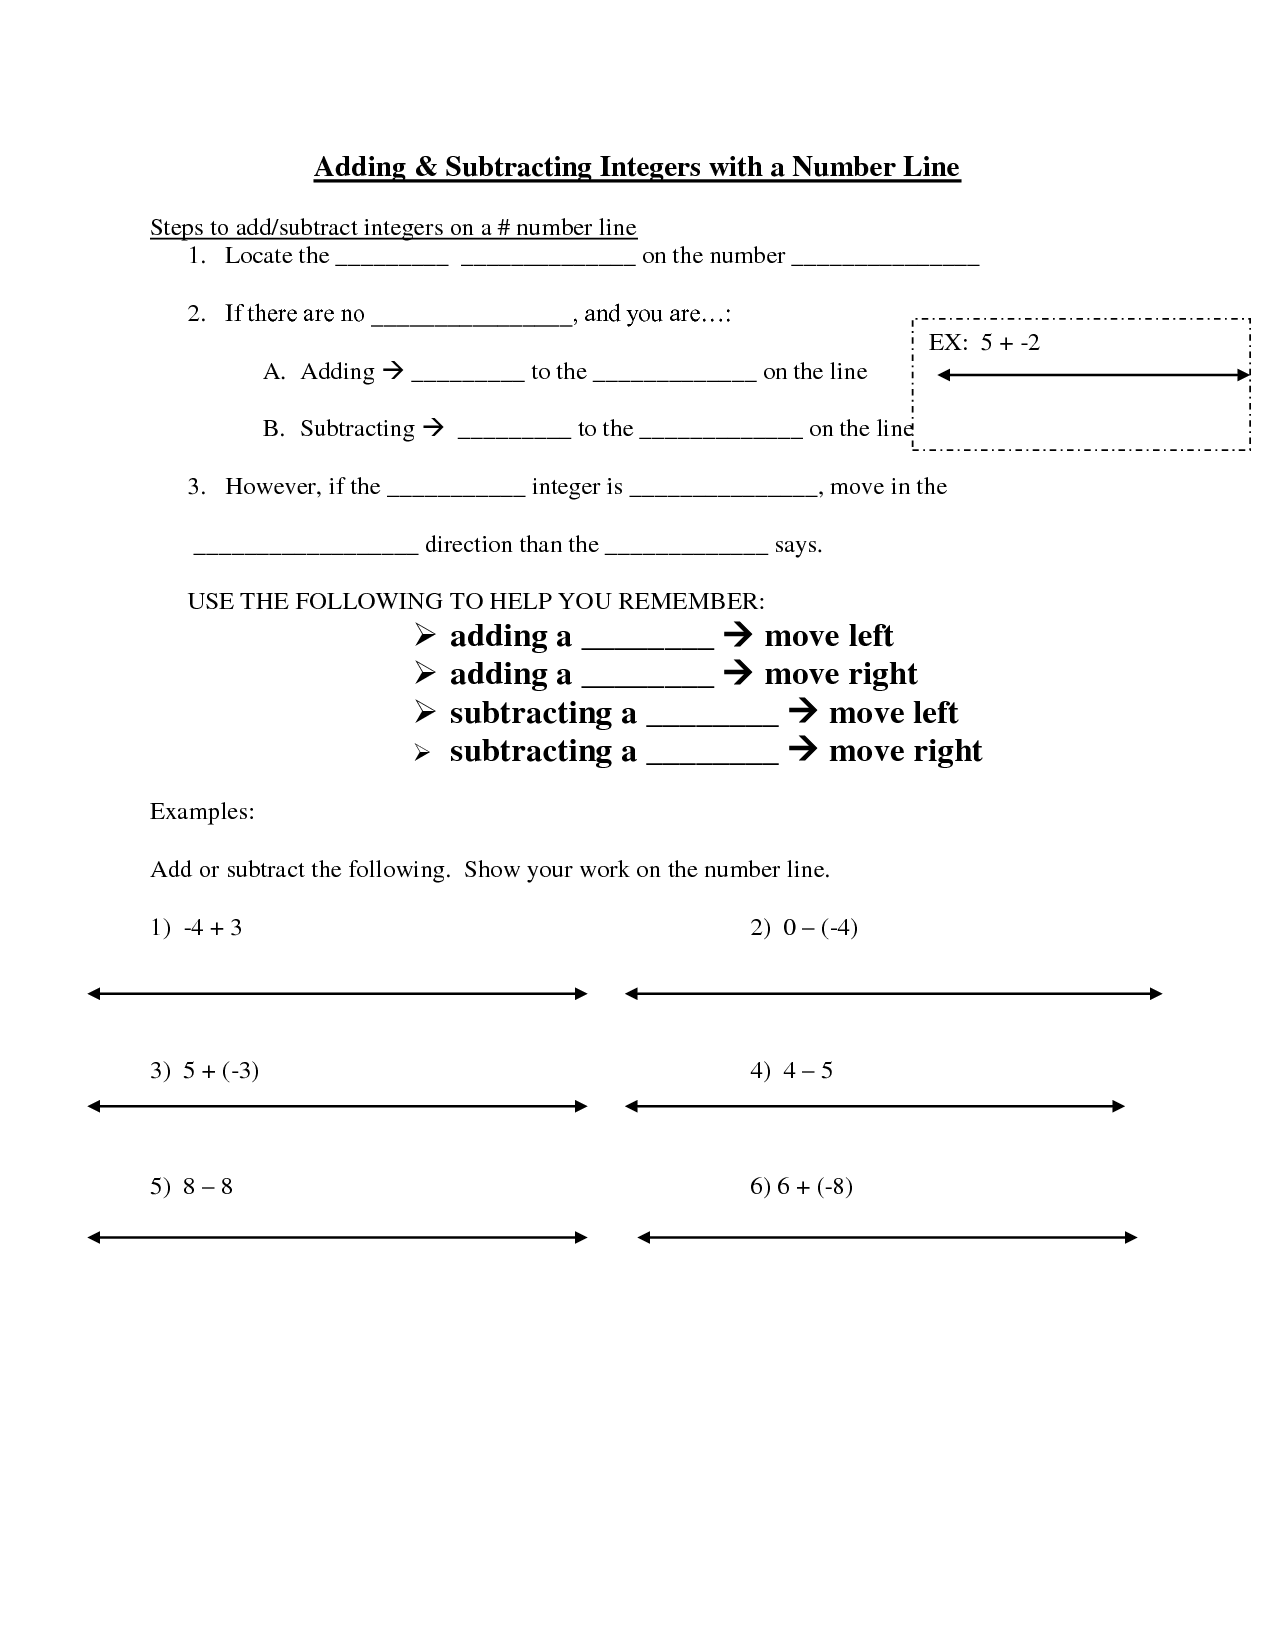 17 Best Images Of Adding Integers Number Line Worksheet